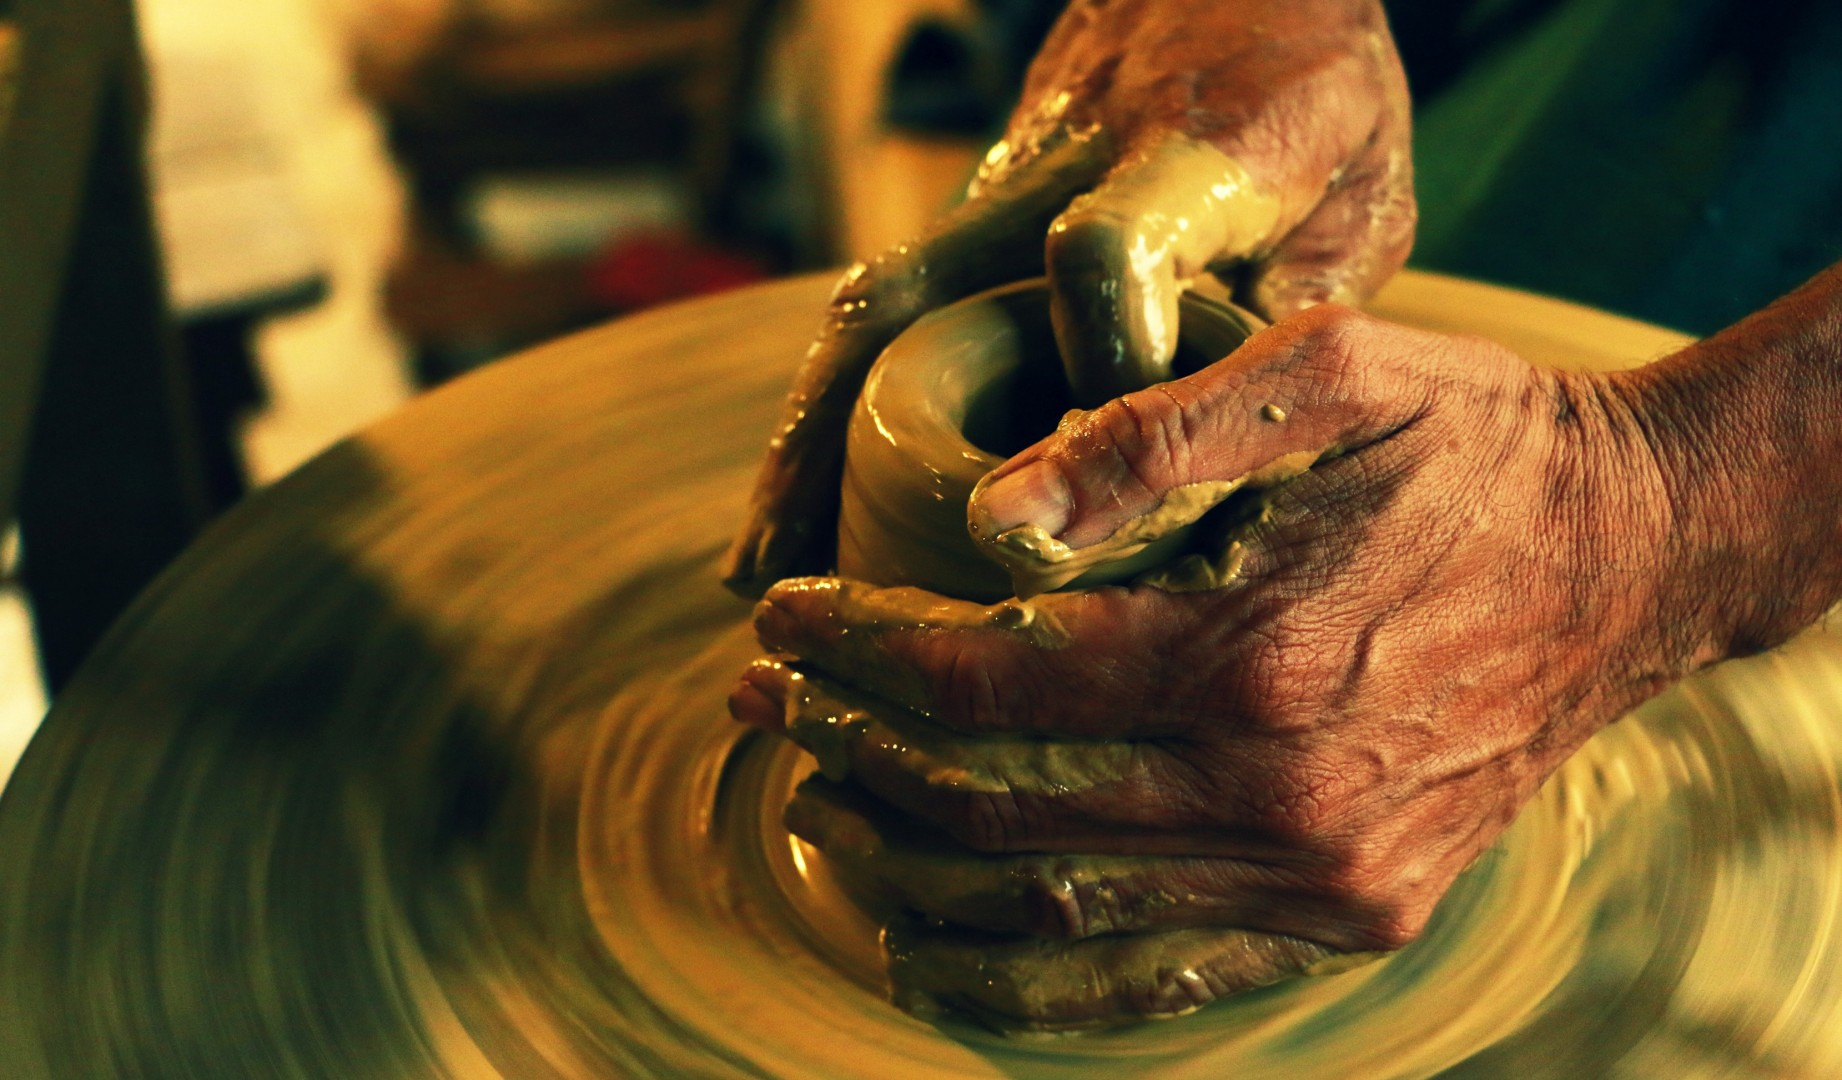 man's hands spinning pottery